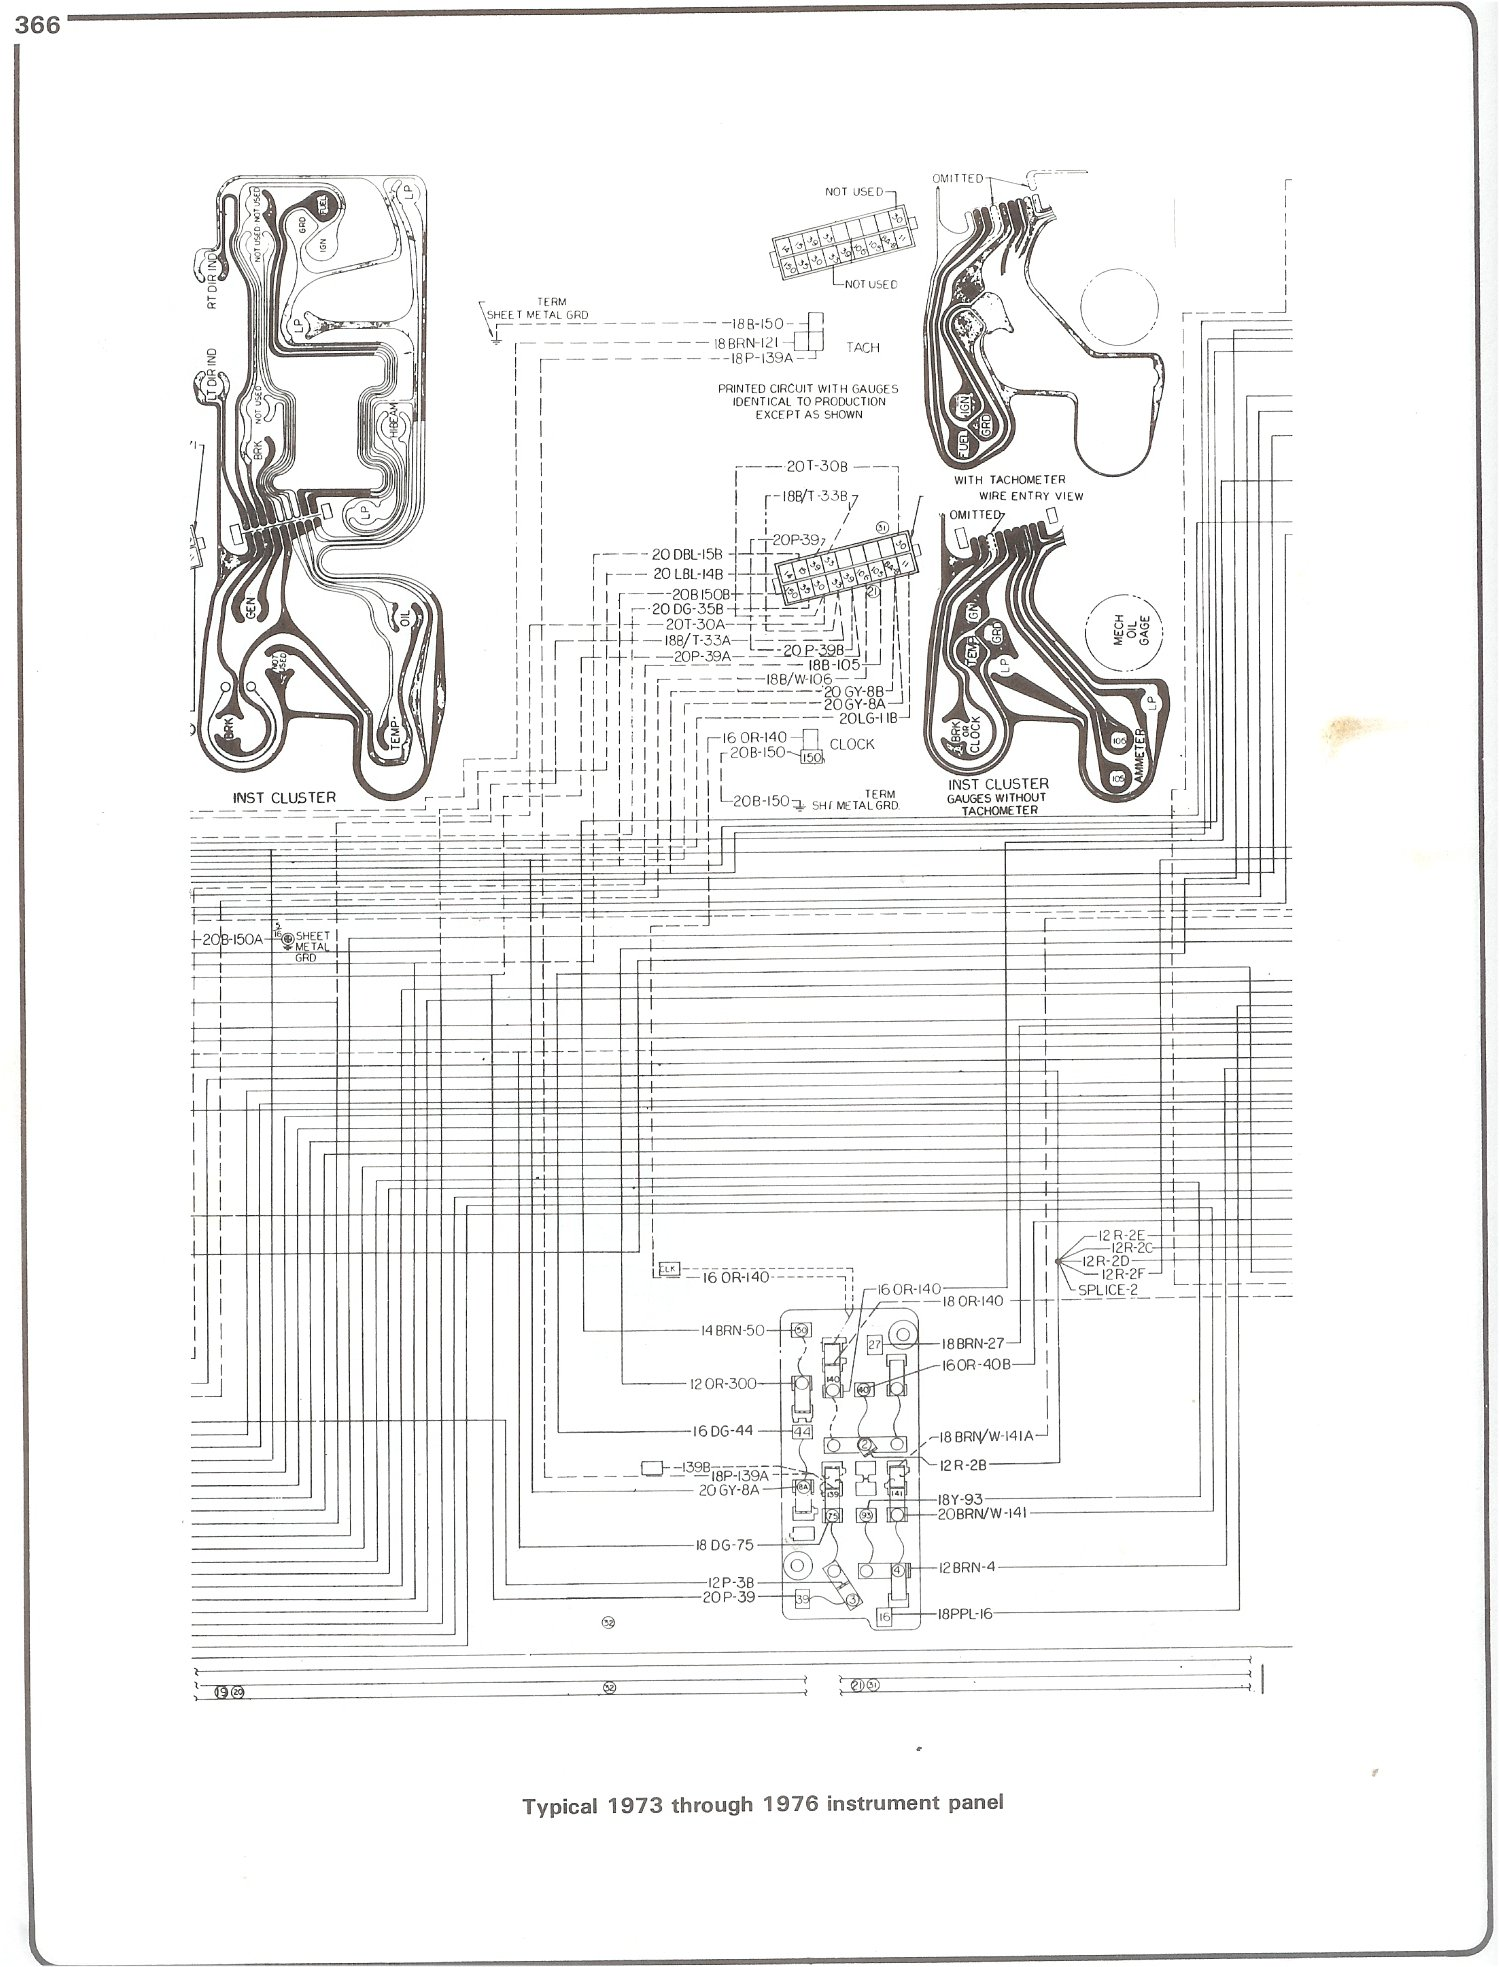 73 76_instrument complete 73 87 wiring diagrams 1989 Chevy 1500 Wiring Diagram at crackthecode.co